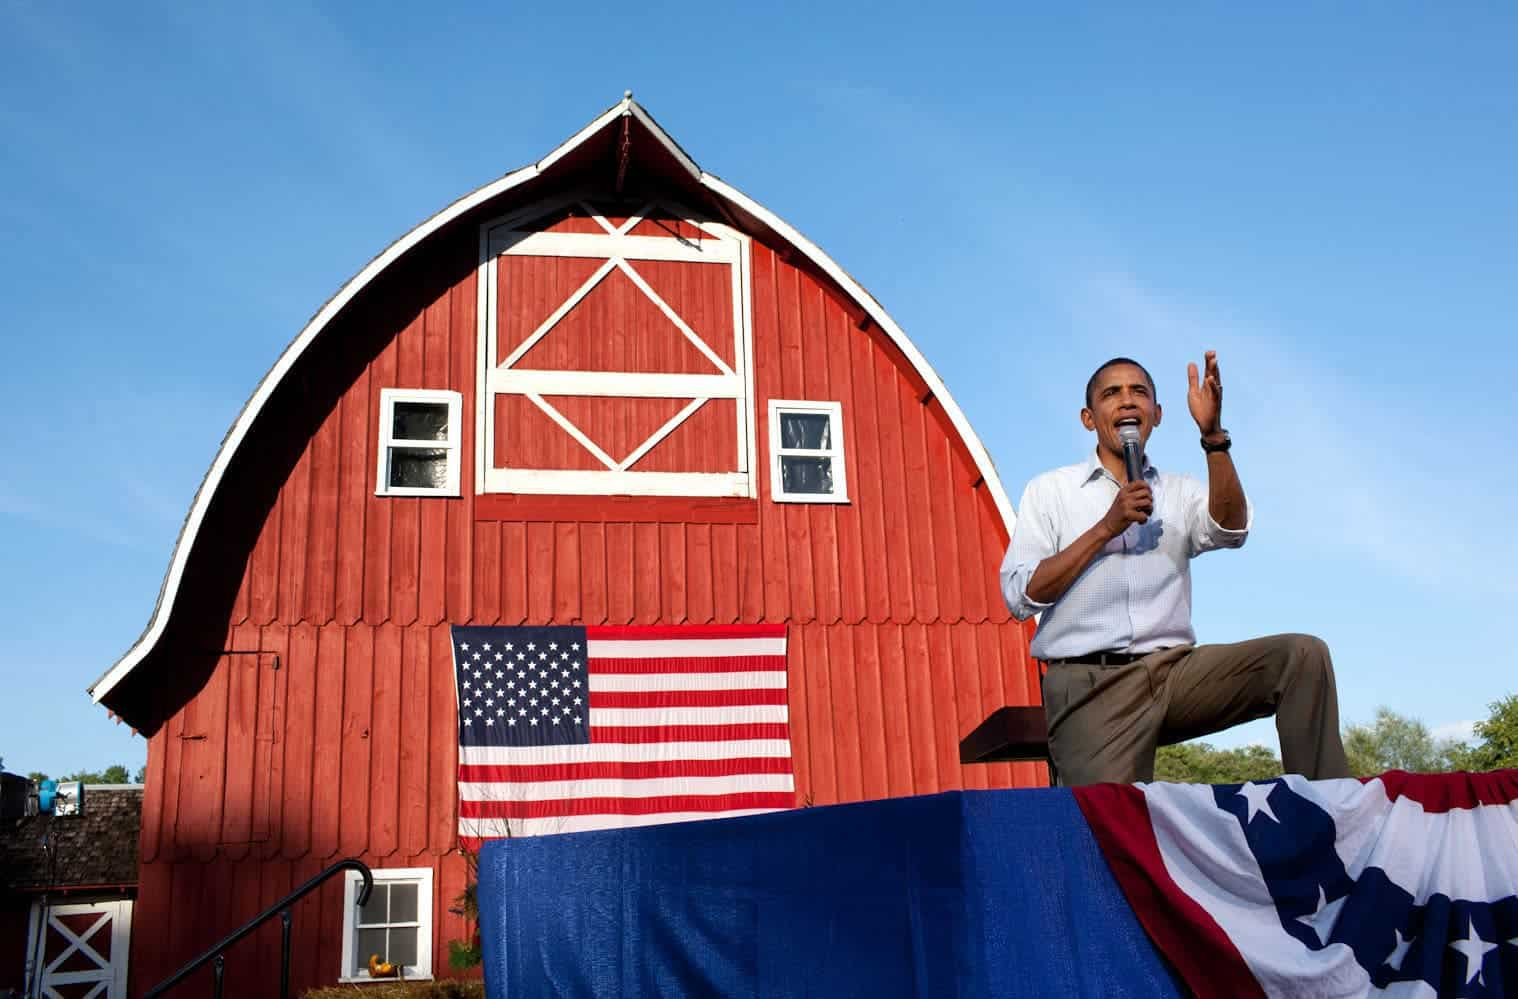 President Barack Obama holds a town hall meeting at the Seed Savers Exchange in Decorah, Iowa, in 2011. Photo by Pete Souza/White House